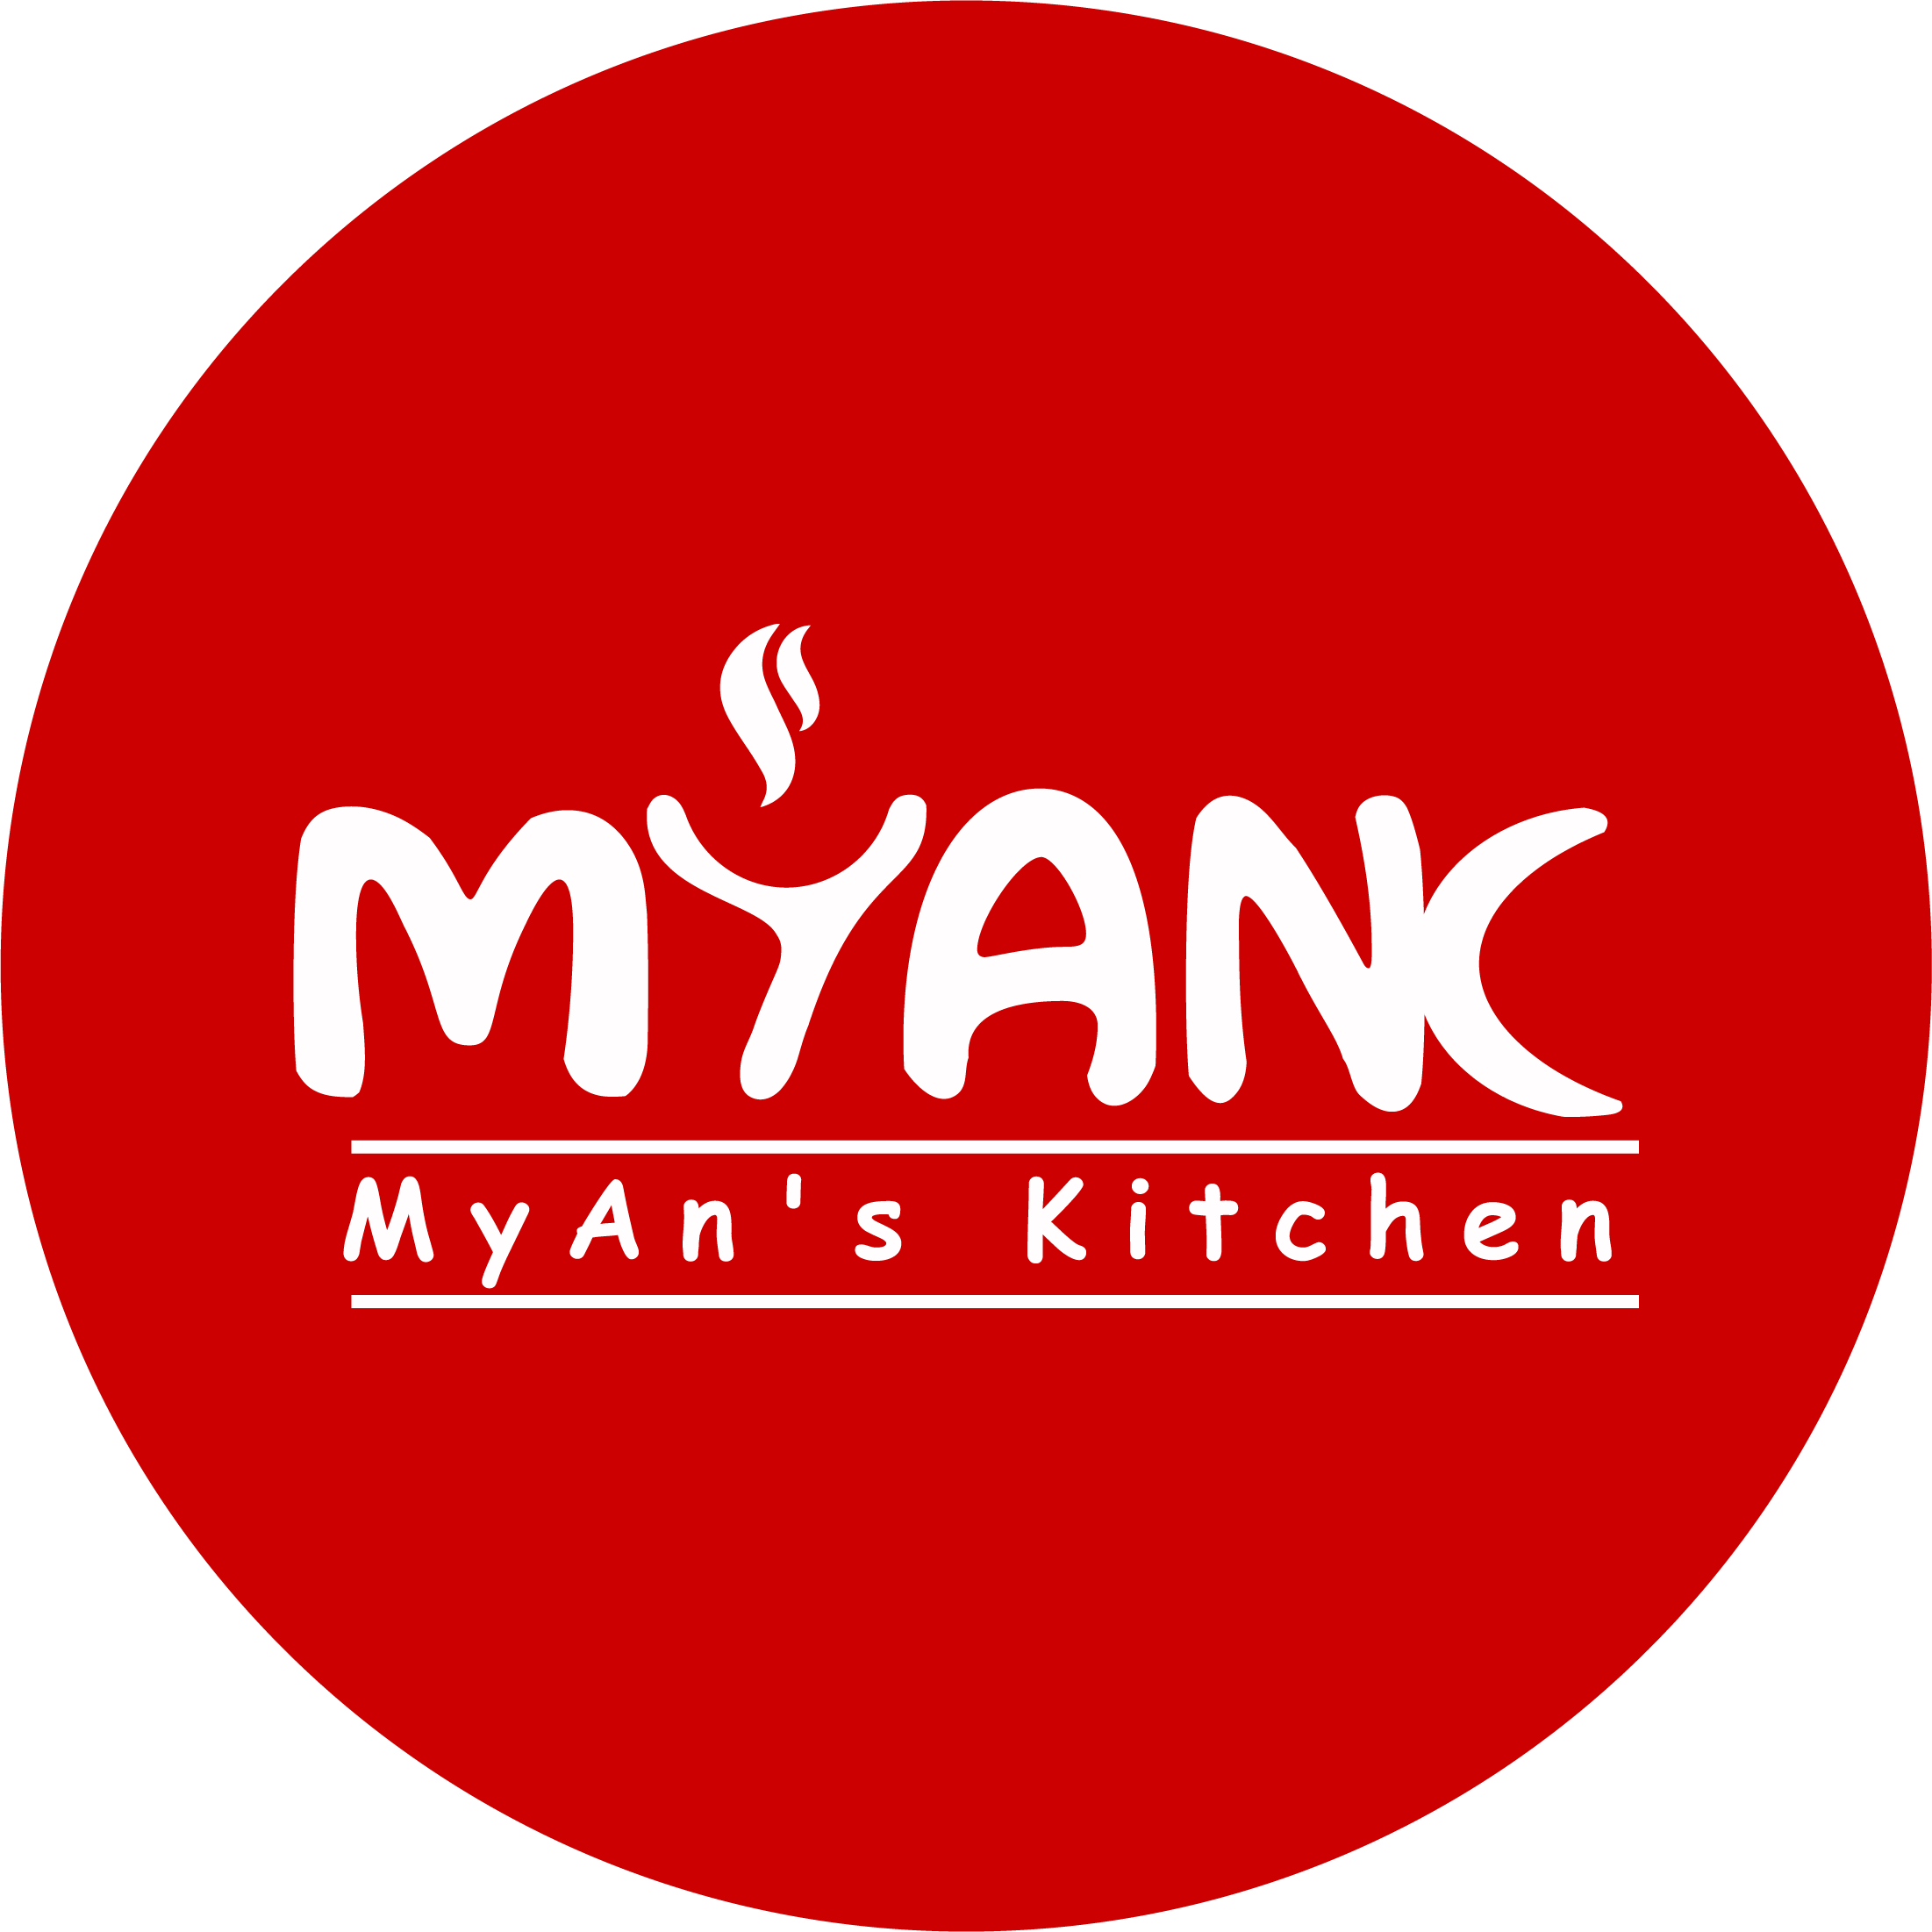 Myan's Kitchen